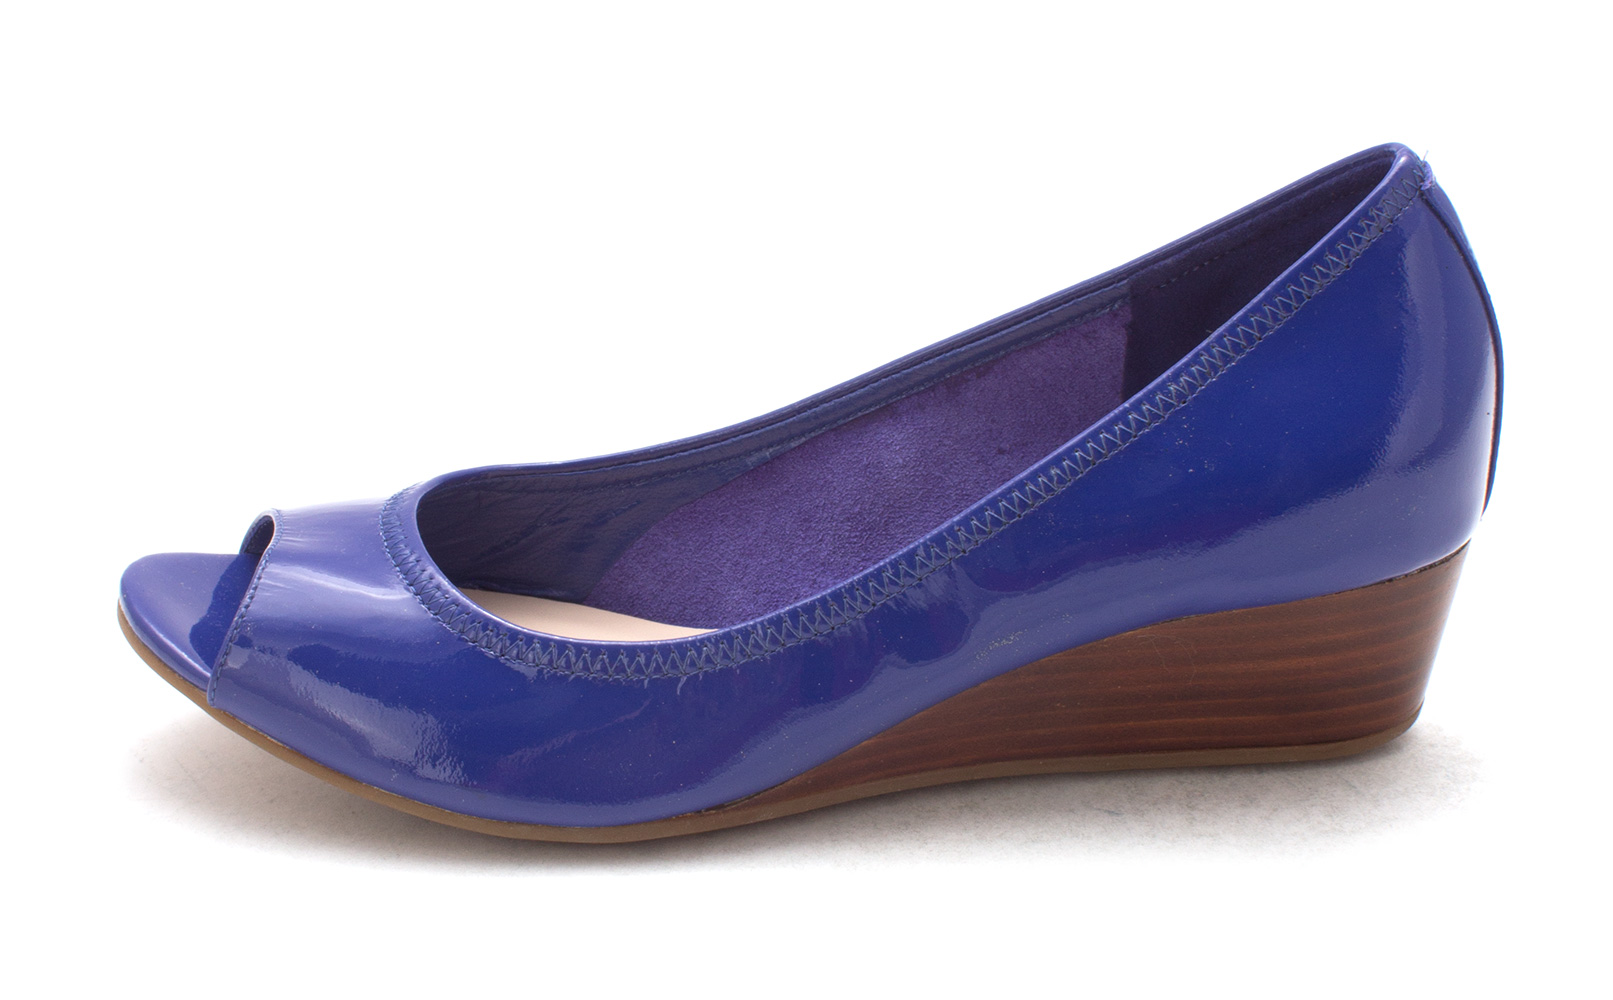 Cole Haan Womens Madysam Peep Toe Ankle Wrap Wedge Pumps Blue Size 6.0